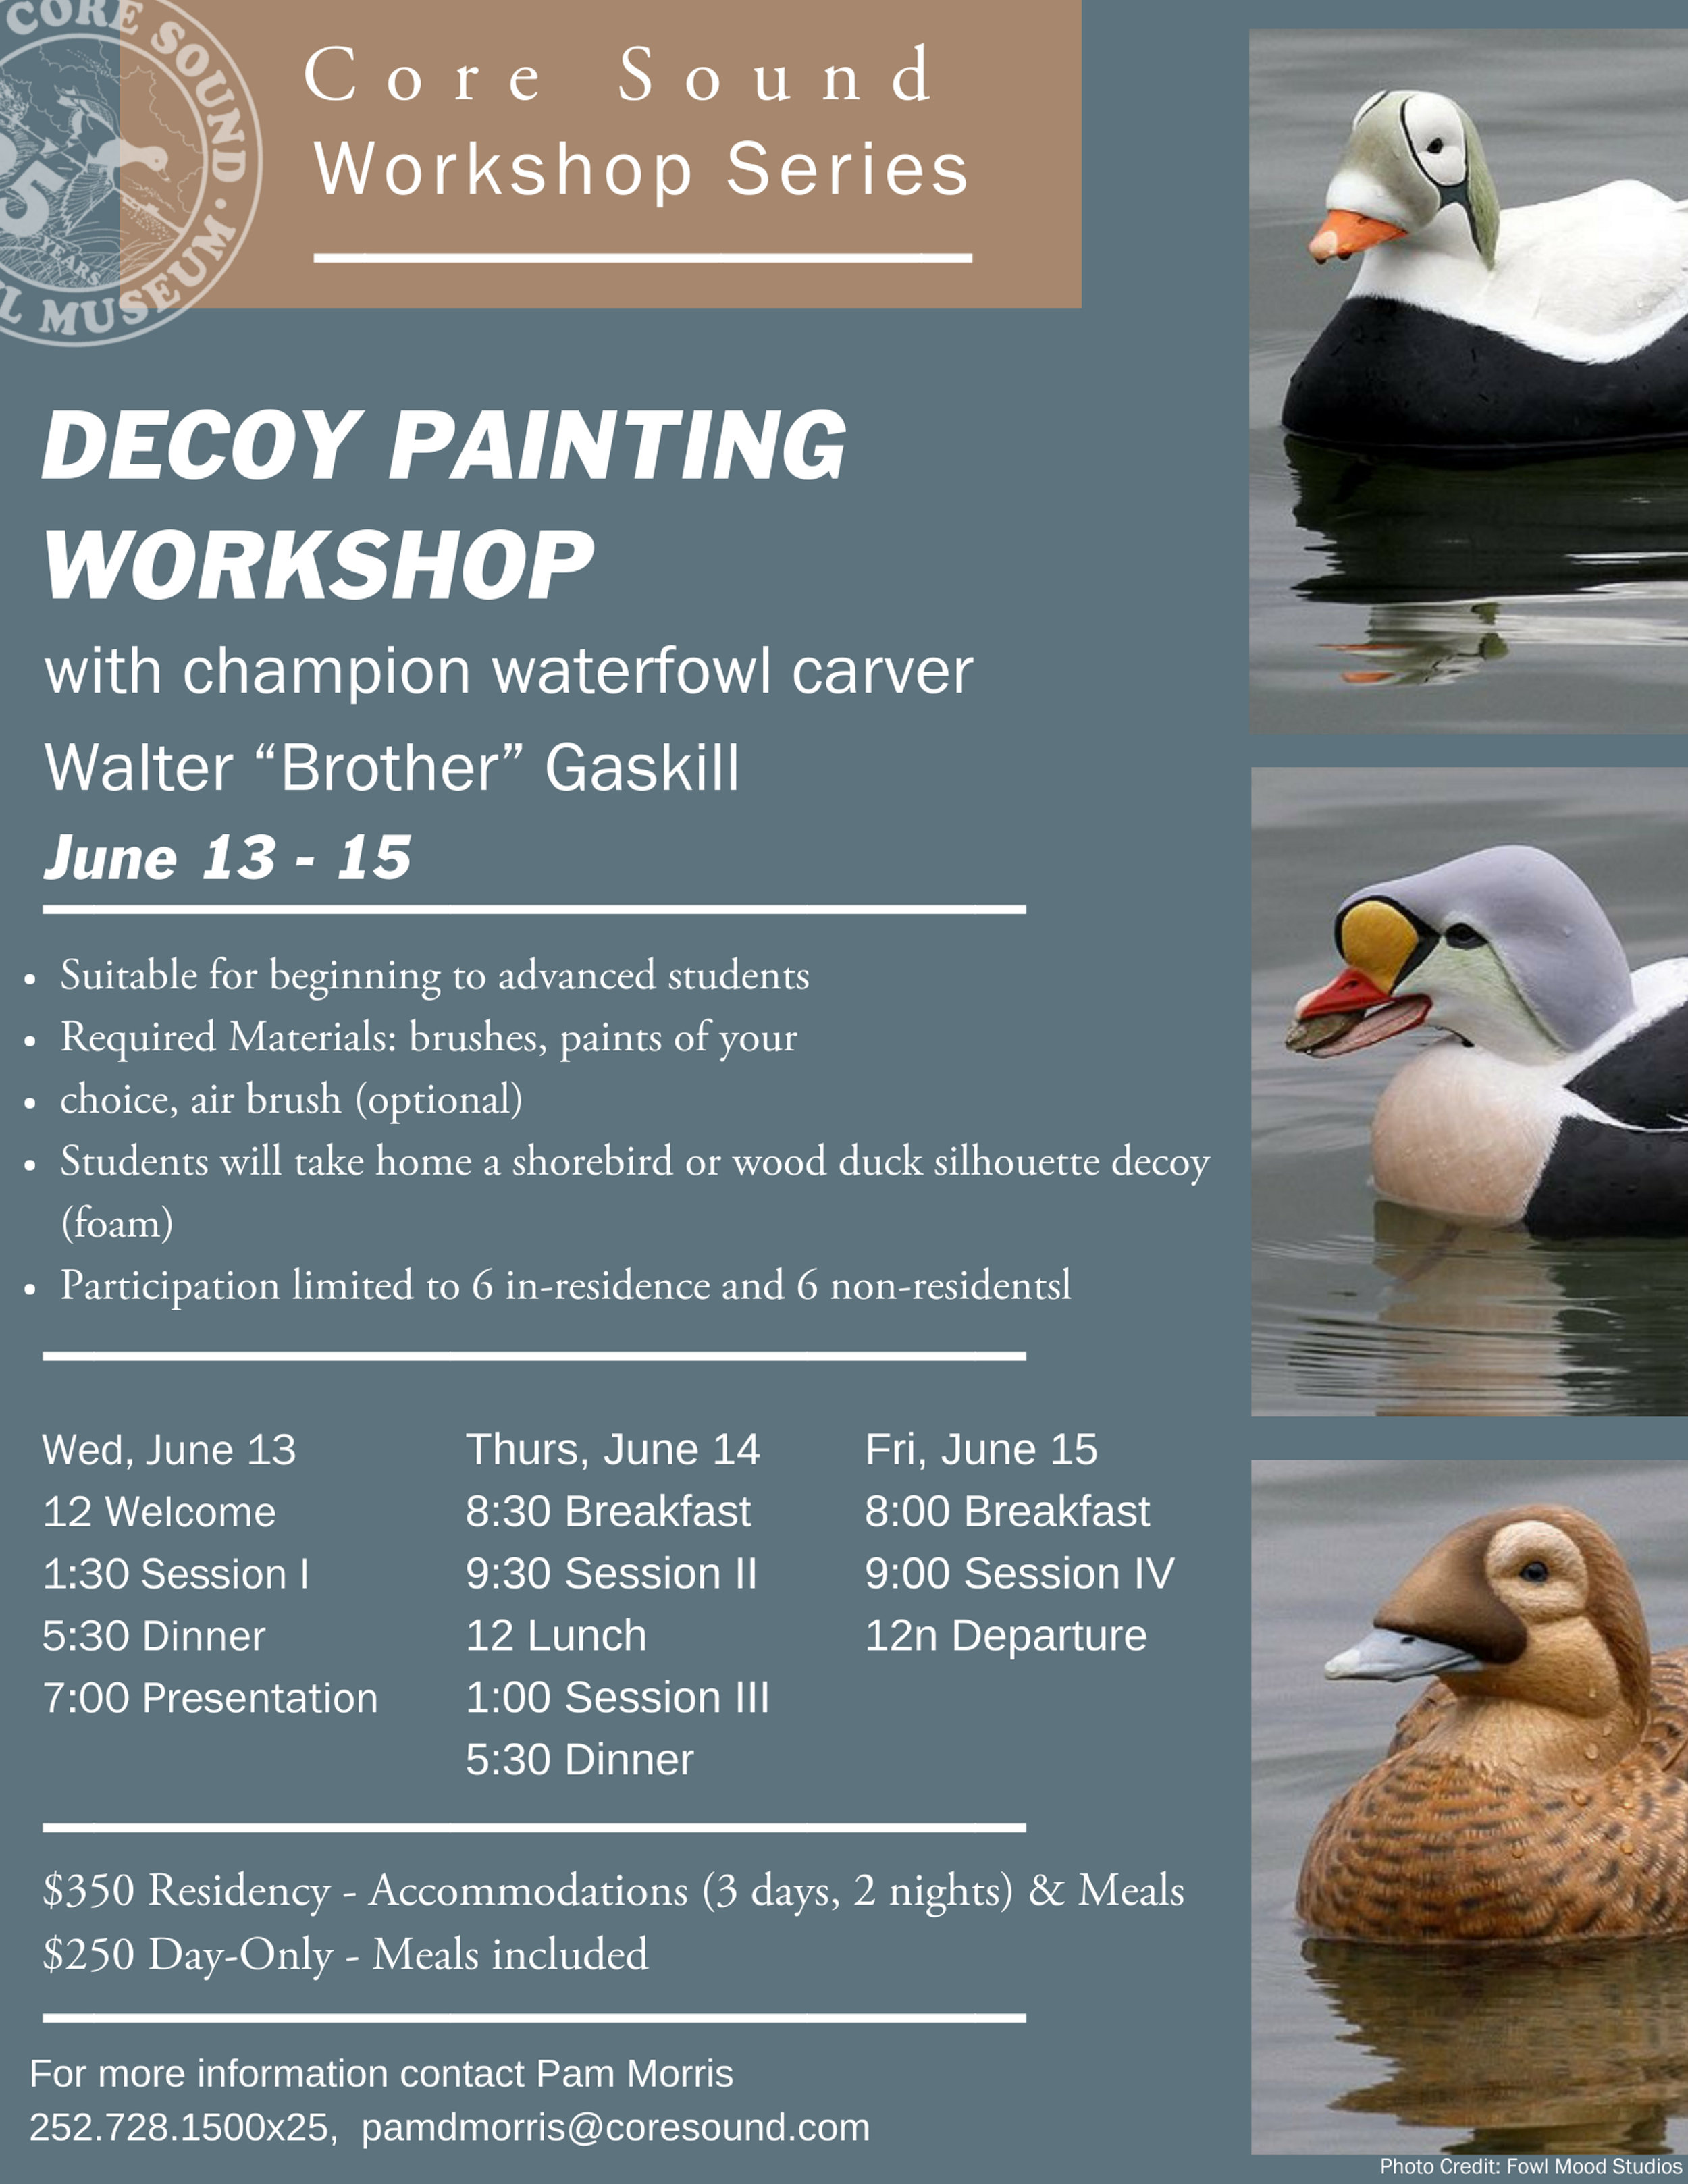 Decoy Painting Workshopwith World Champion Brother